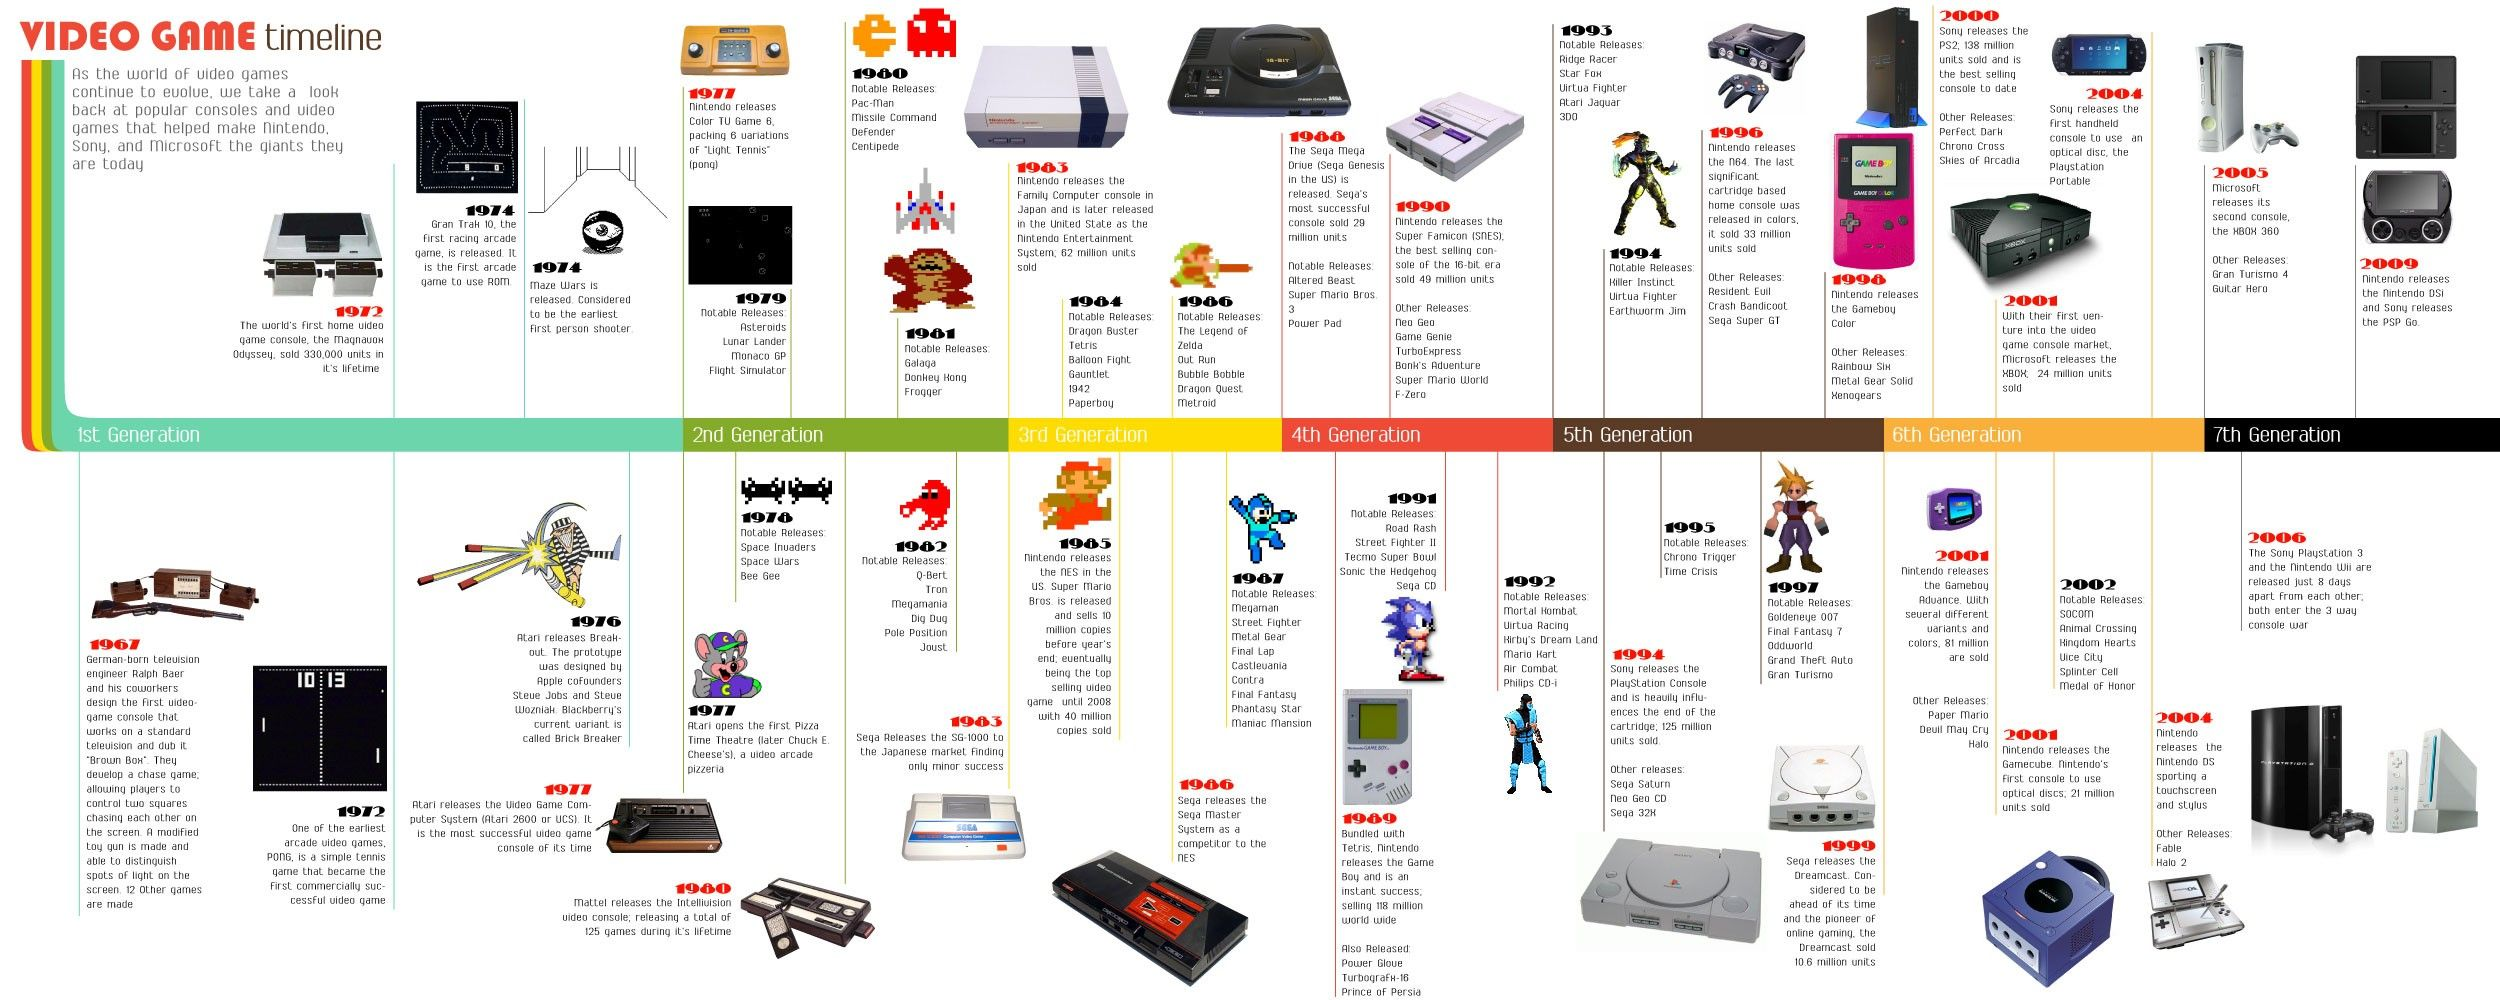 Video Game Timeline Visual Games